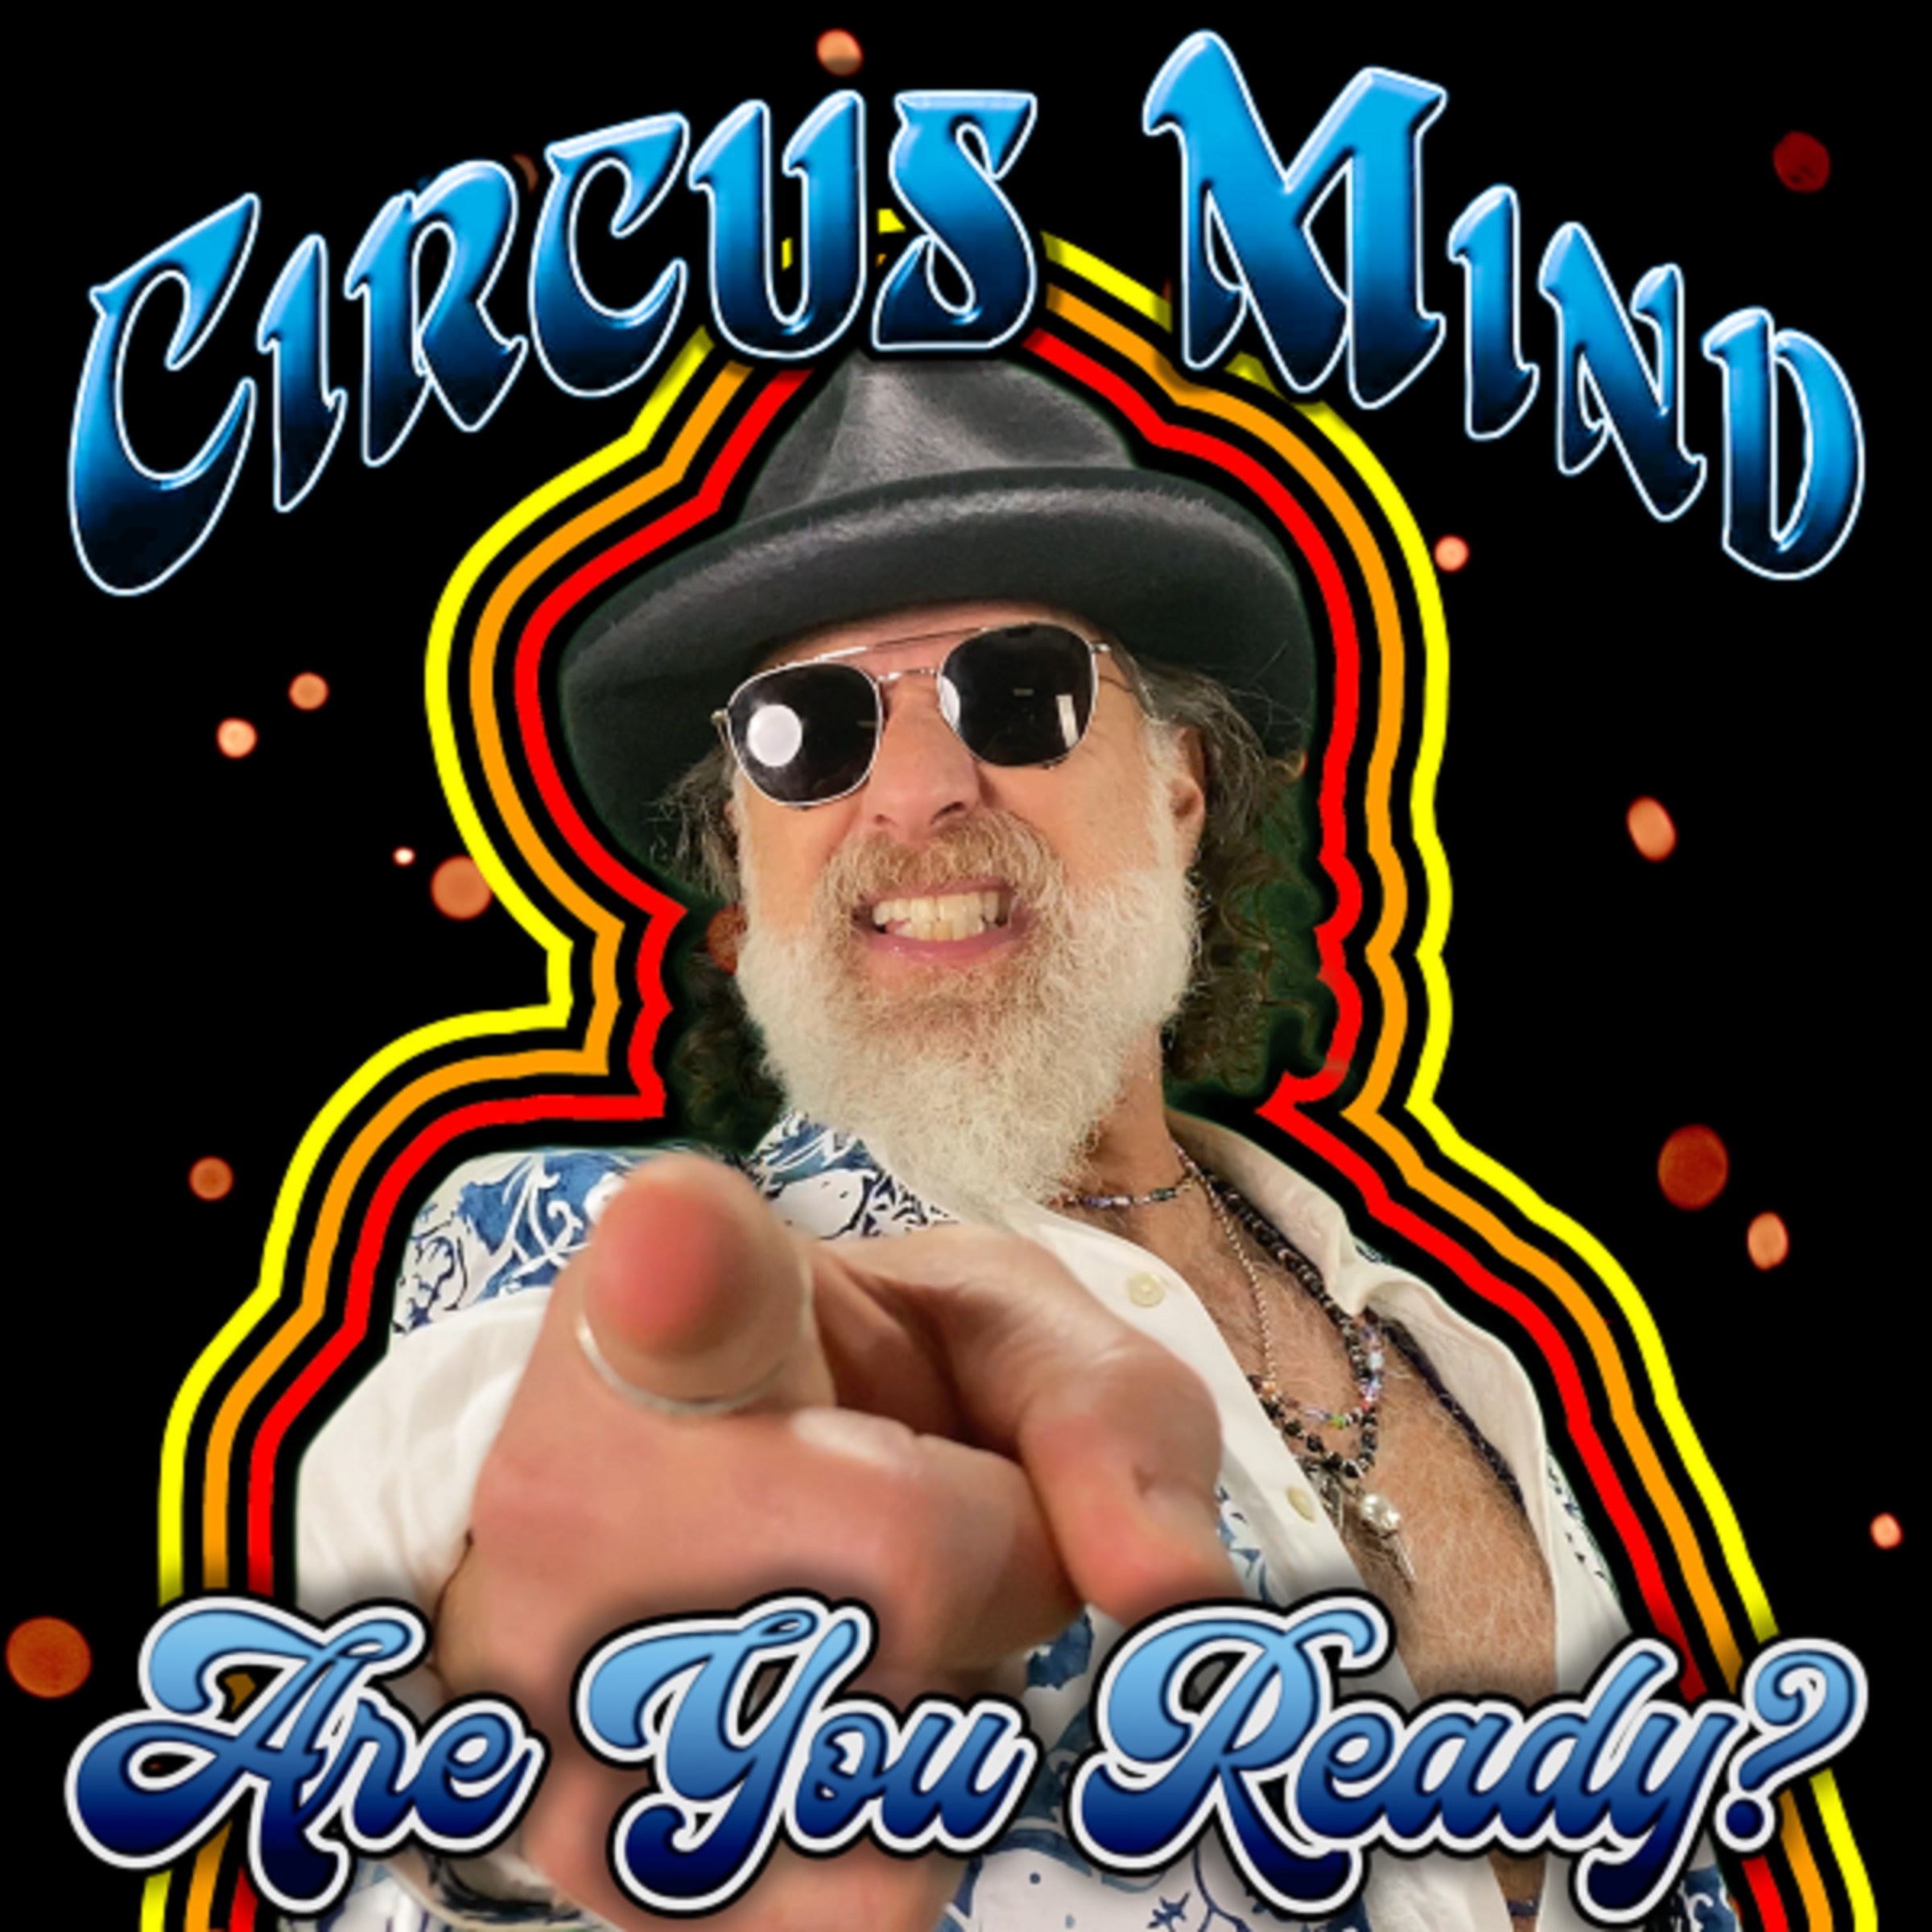 CIRCUS MIND Showcase Their '70s Rock, Funk, and Jazz Grooves on the New Single